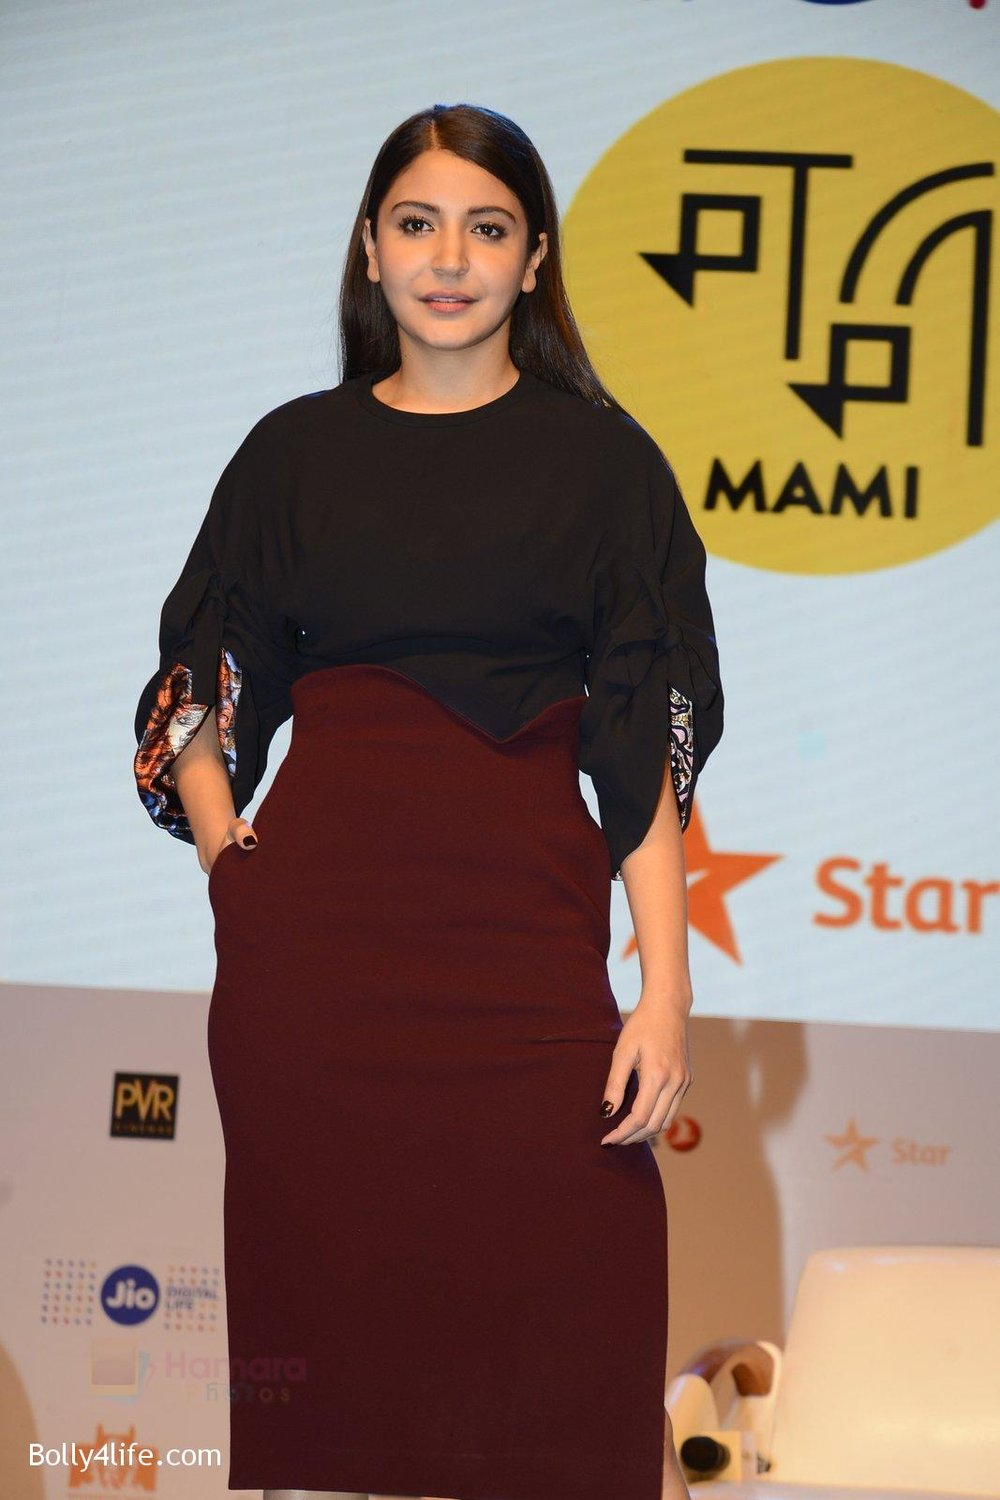 Anushka-Sharma-talk-about-their-movie-Ae-Dil-Hai-Mushkil-during-the-Jio-MAMI-18th-Mumbai-Film-Festival-with-star-on-21st-Oct-2016-19.jpg